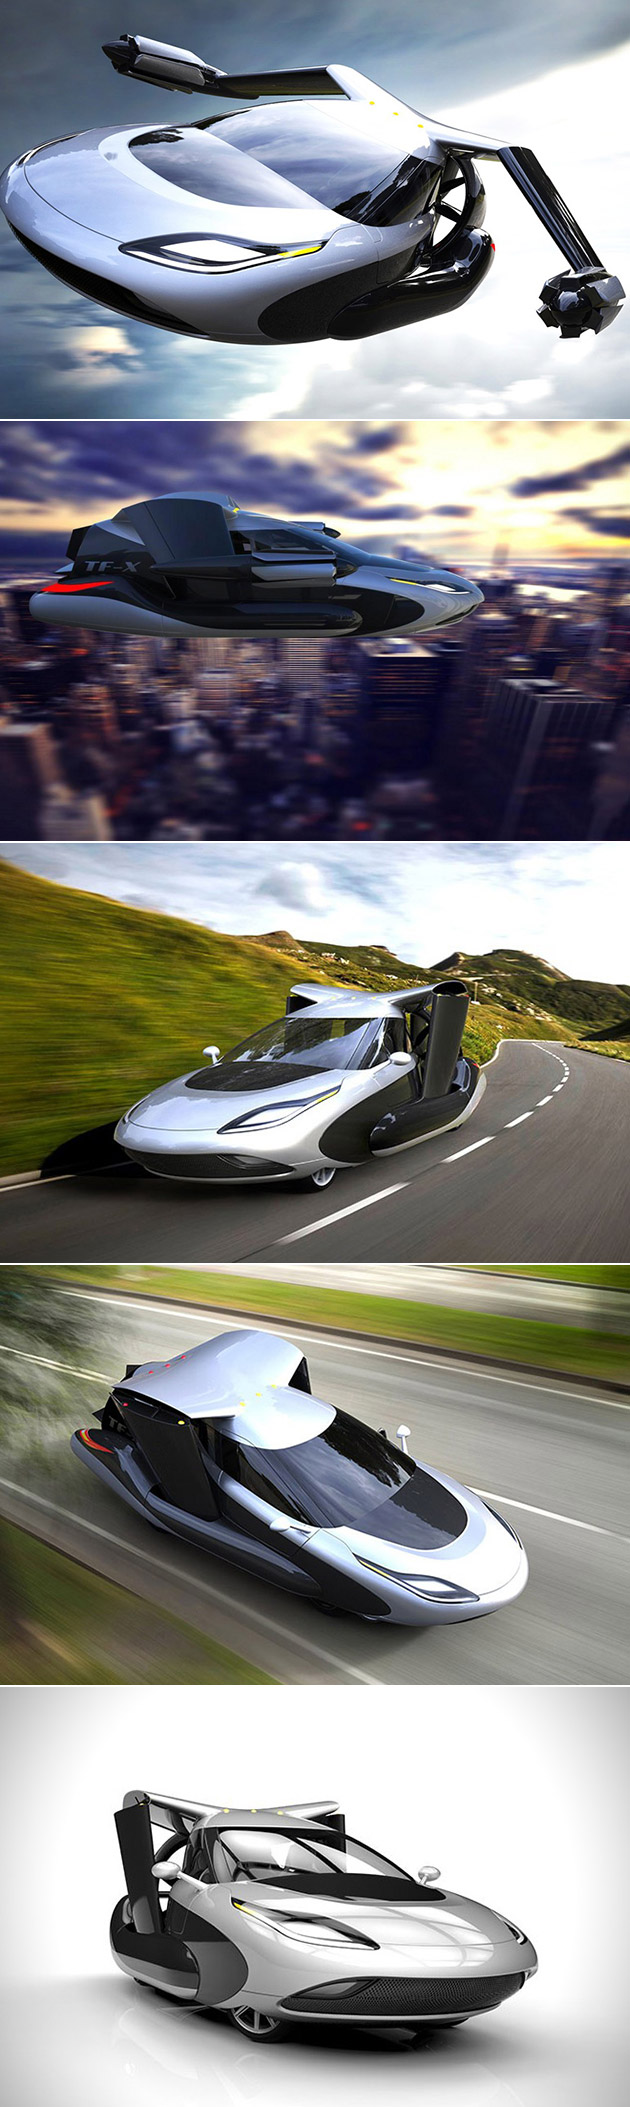 Terrafugia TF-X Flying Car